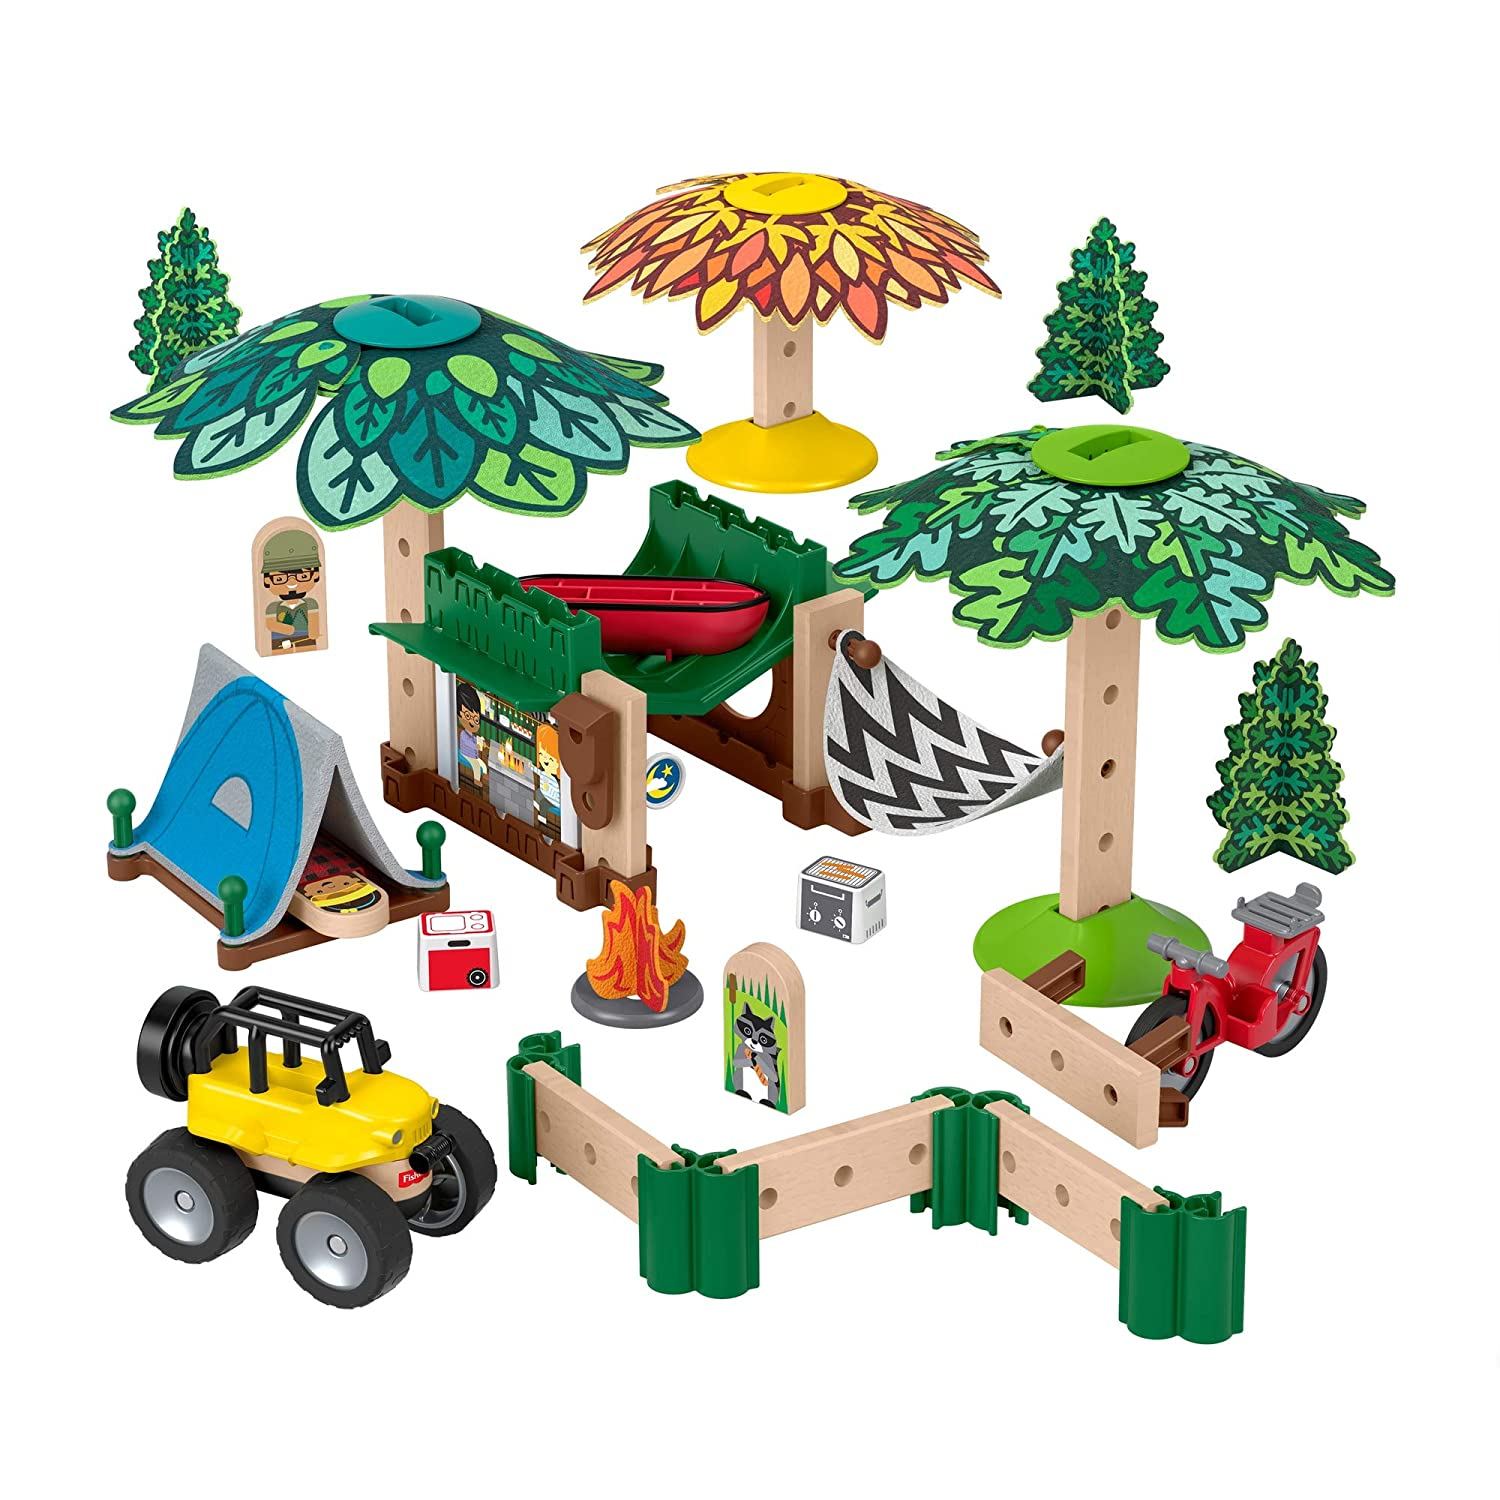 Fisher-Price Wonder Makers Design System Soft Slumber Campground - 60+ Piece Building and Wooden Track Play Set for Ages 3 Years & Up